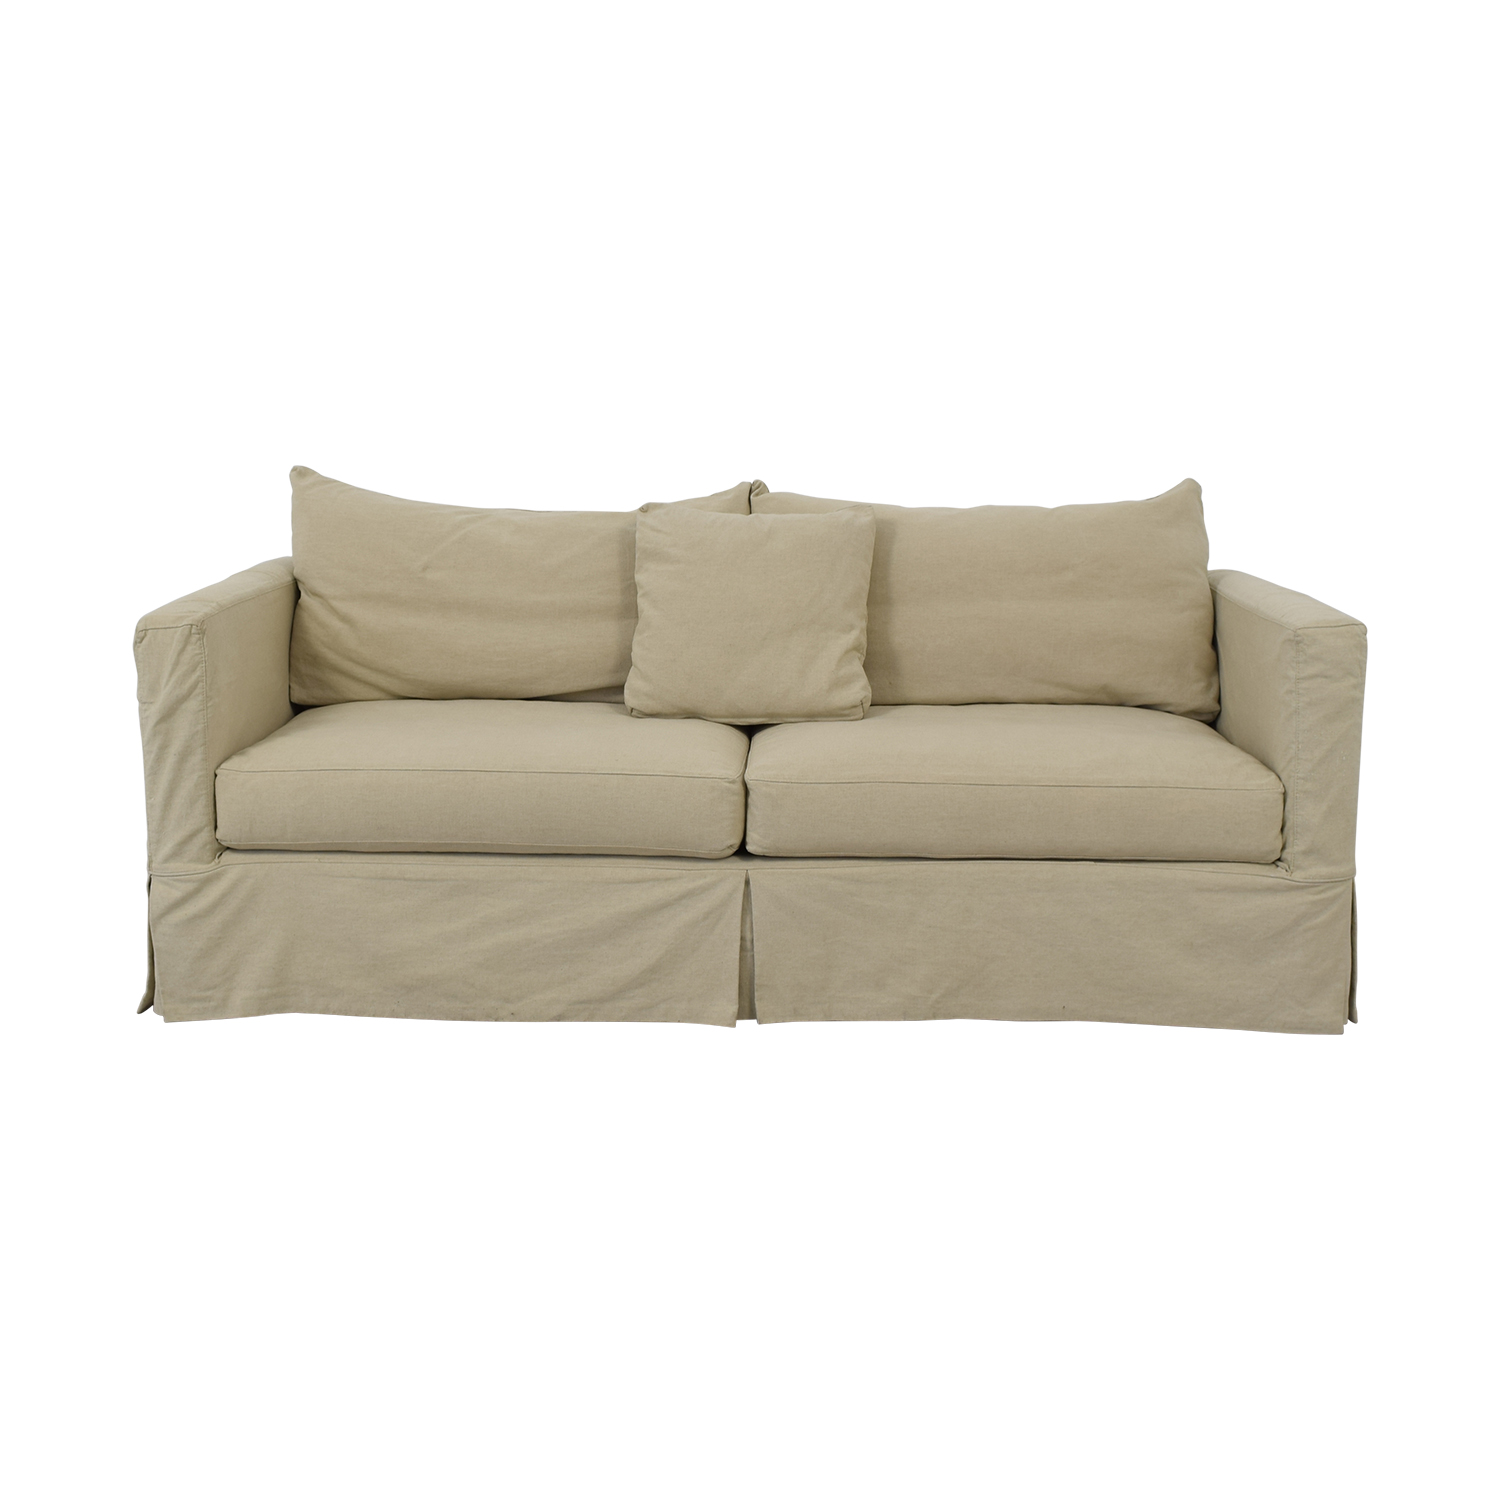 buy Crate & Barrel Crate & Barrel Couch online